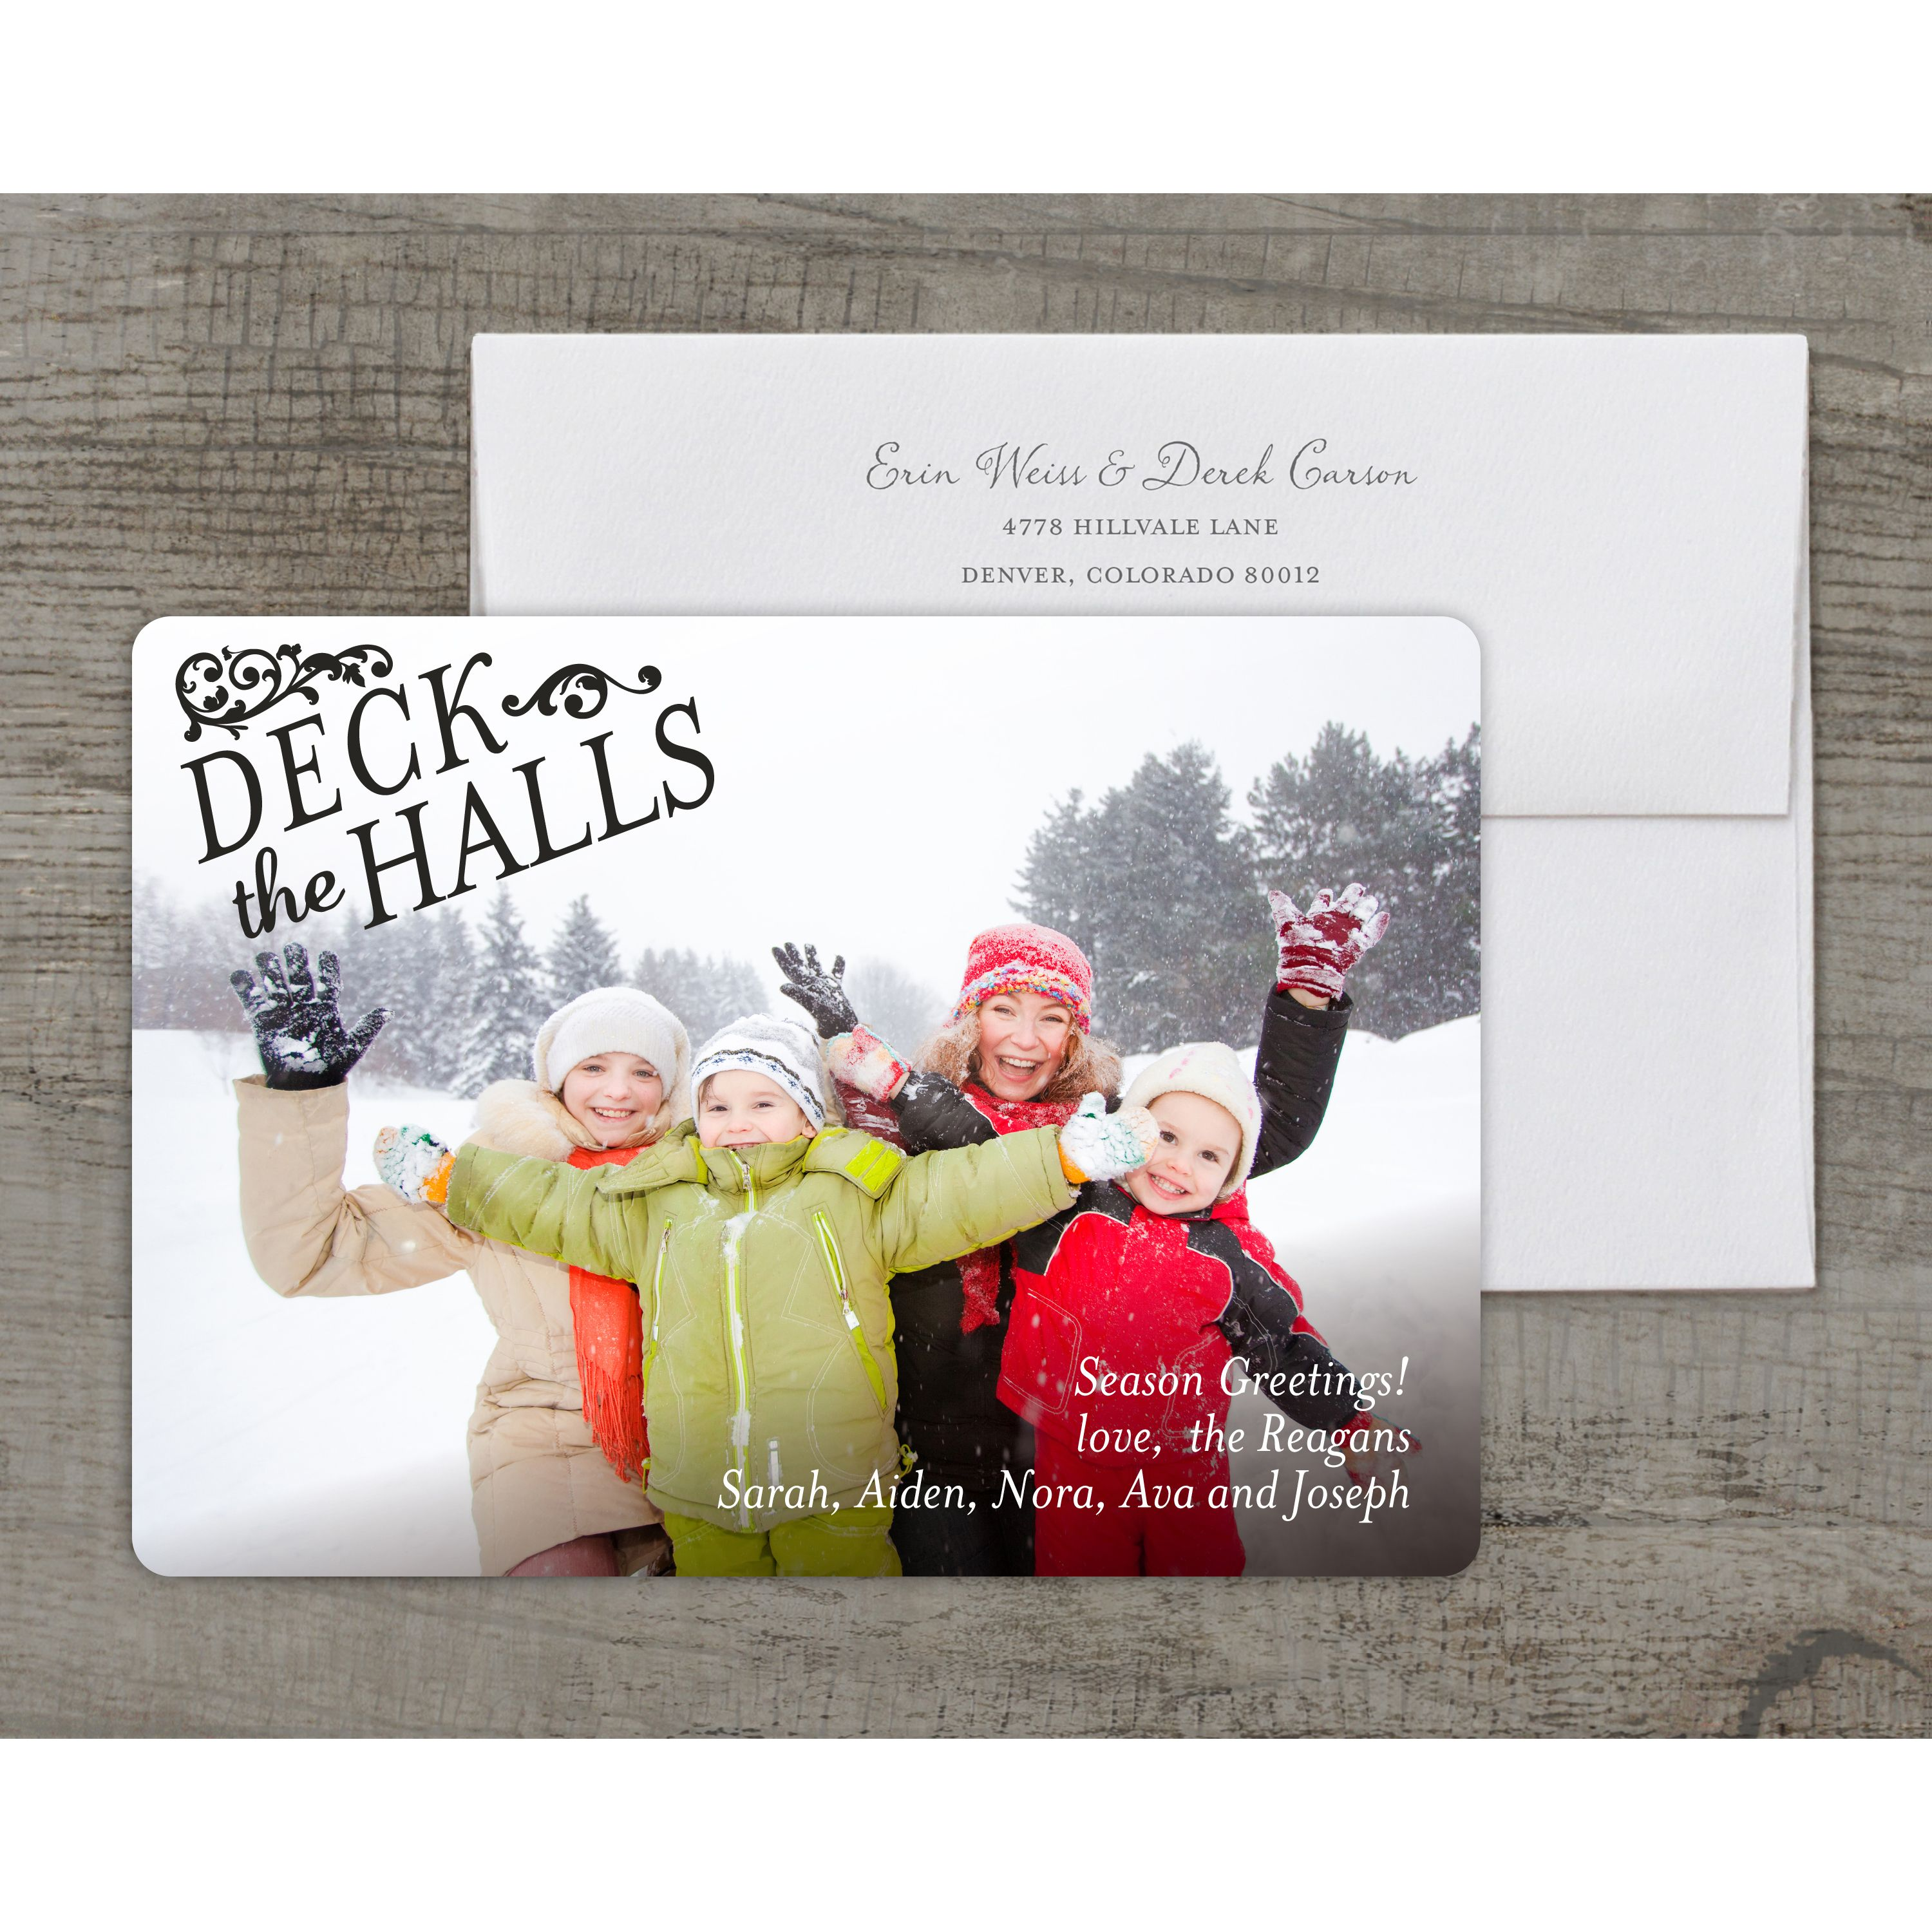 Deck the Halls - Deluxe 5x7 Personalized Holiday Holiday Card